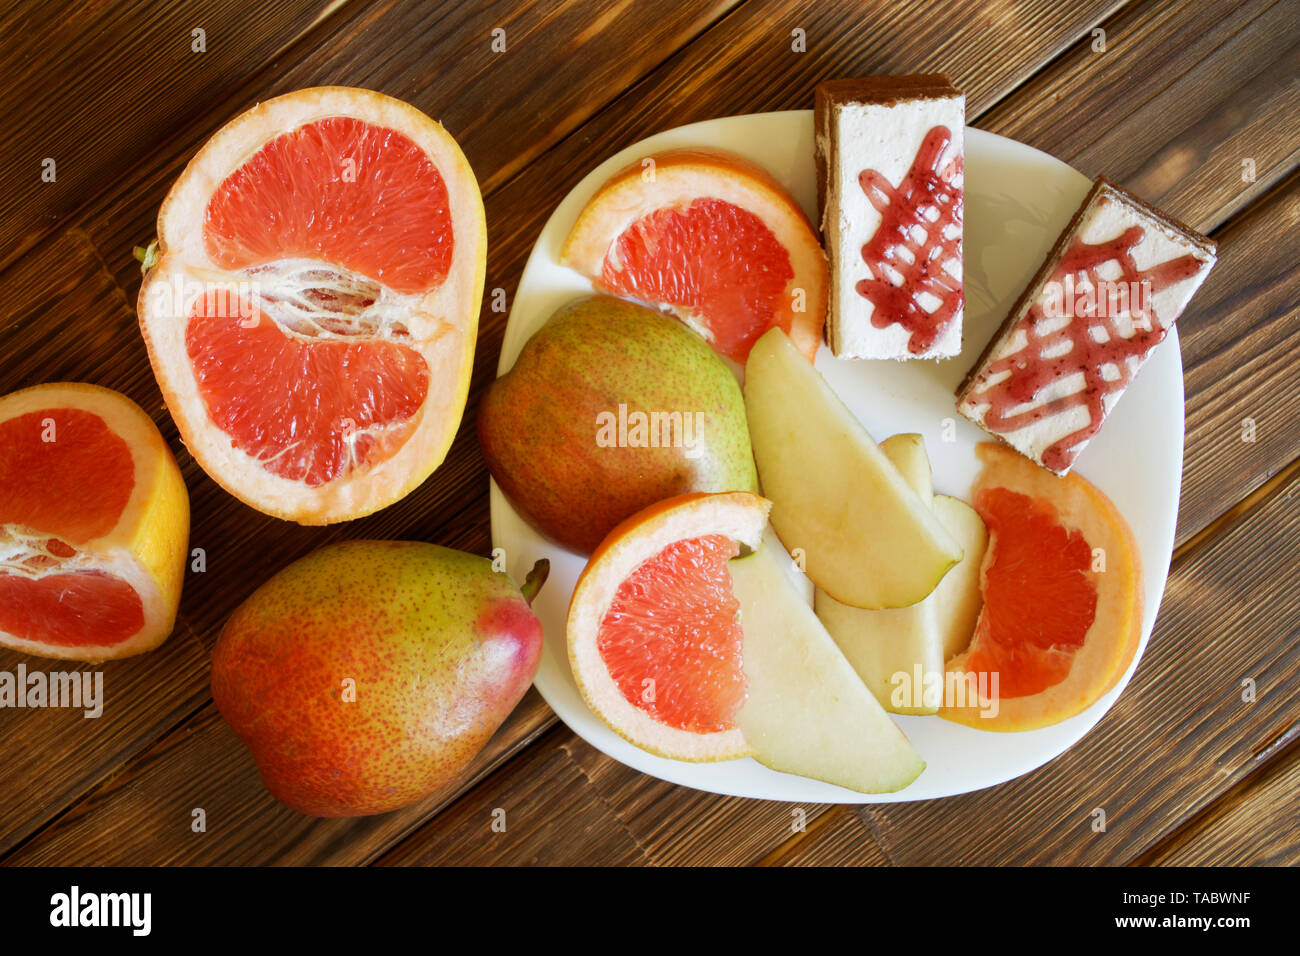 Sponge cakes and slices of grapefruit and pears lie in a white plate on a wooden surface made of pine boards. Buffet in authentic natural hotel. Dayli - Stock Image